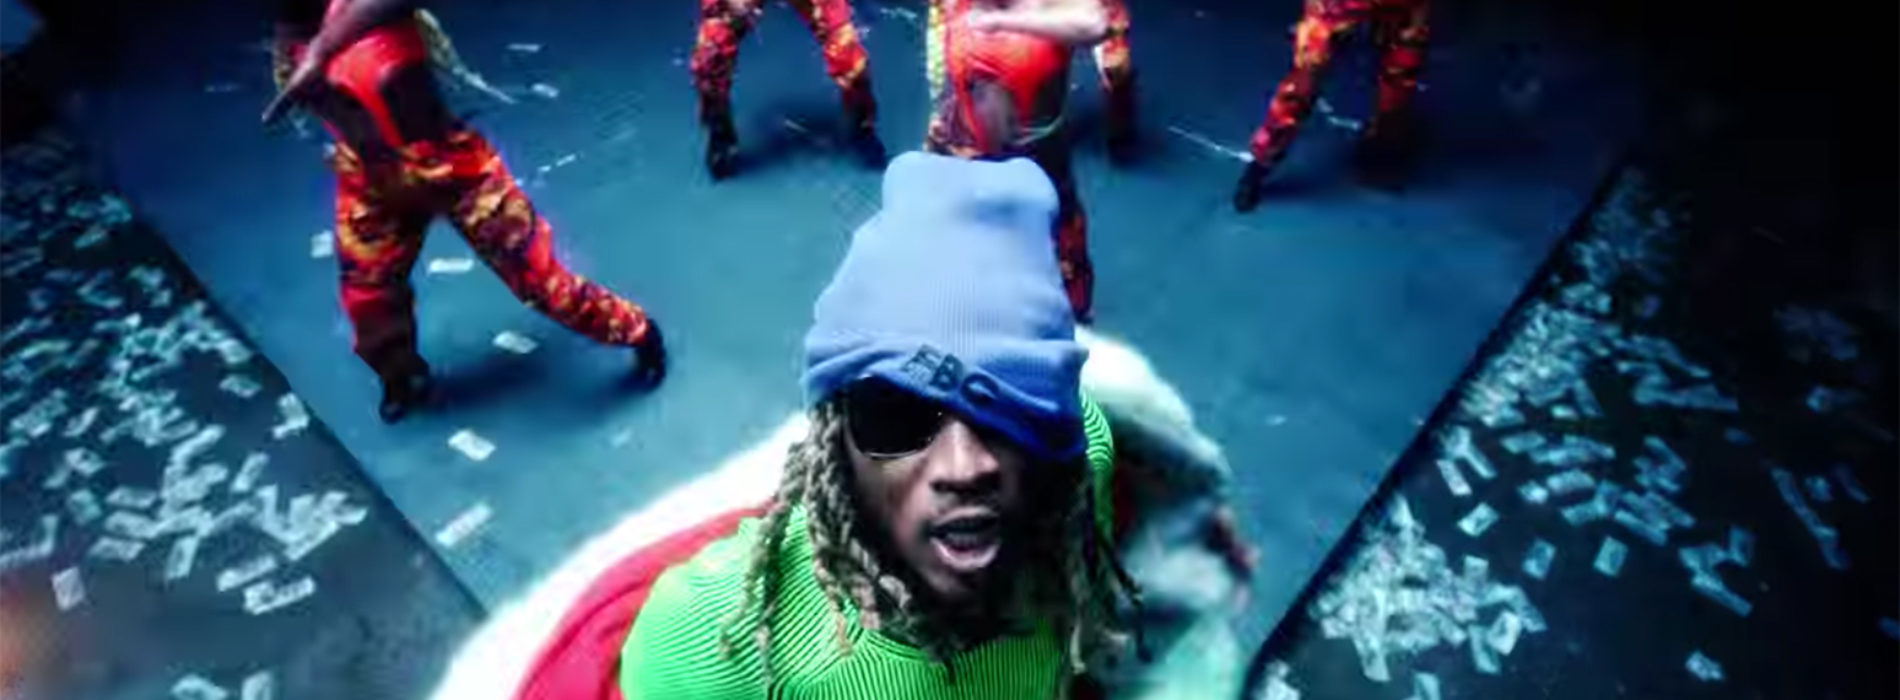 Future – Jumpin on a Jet – Janvier 2019